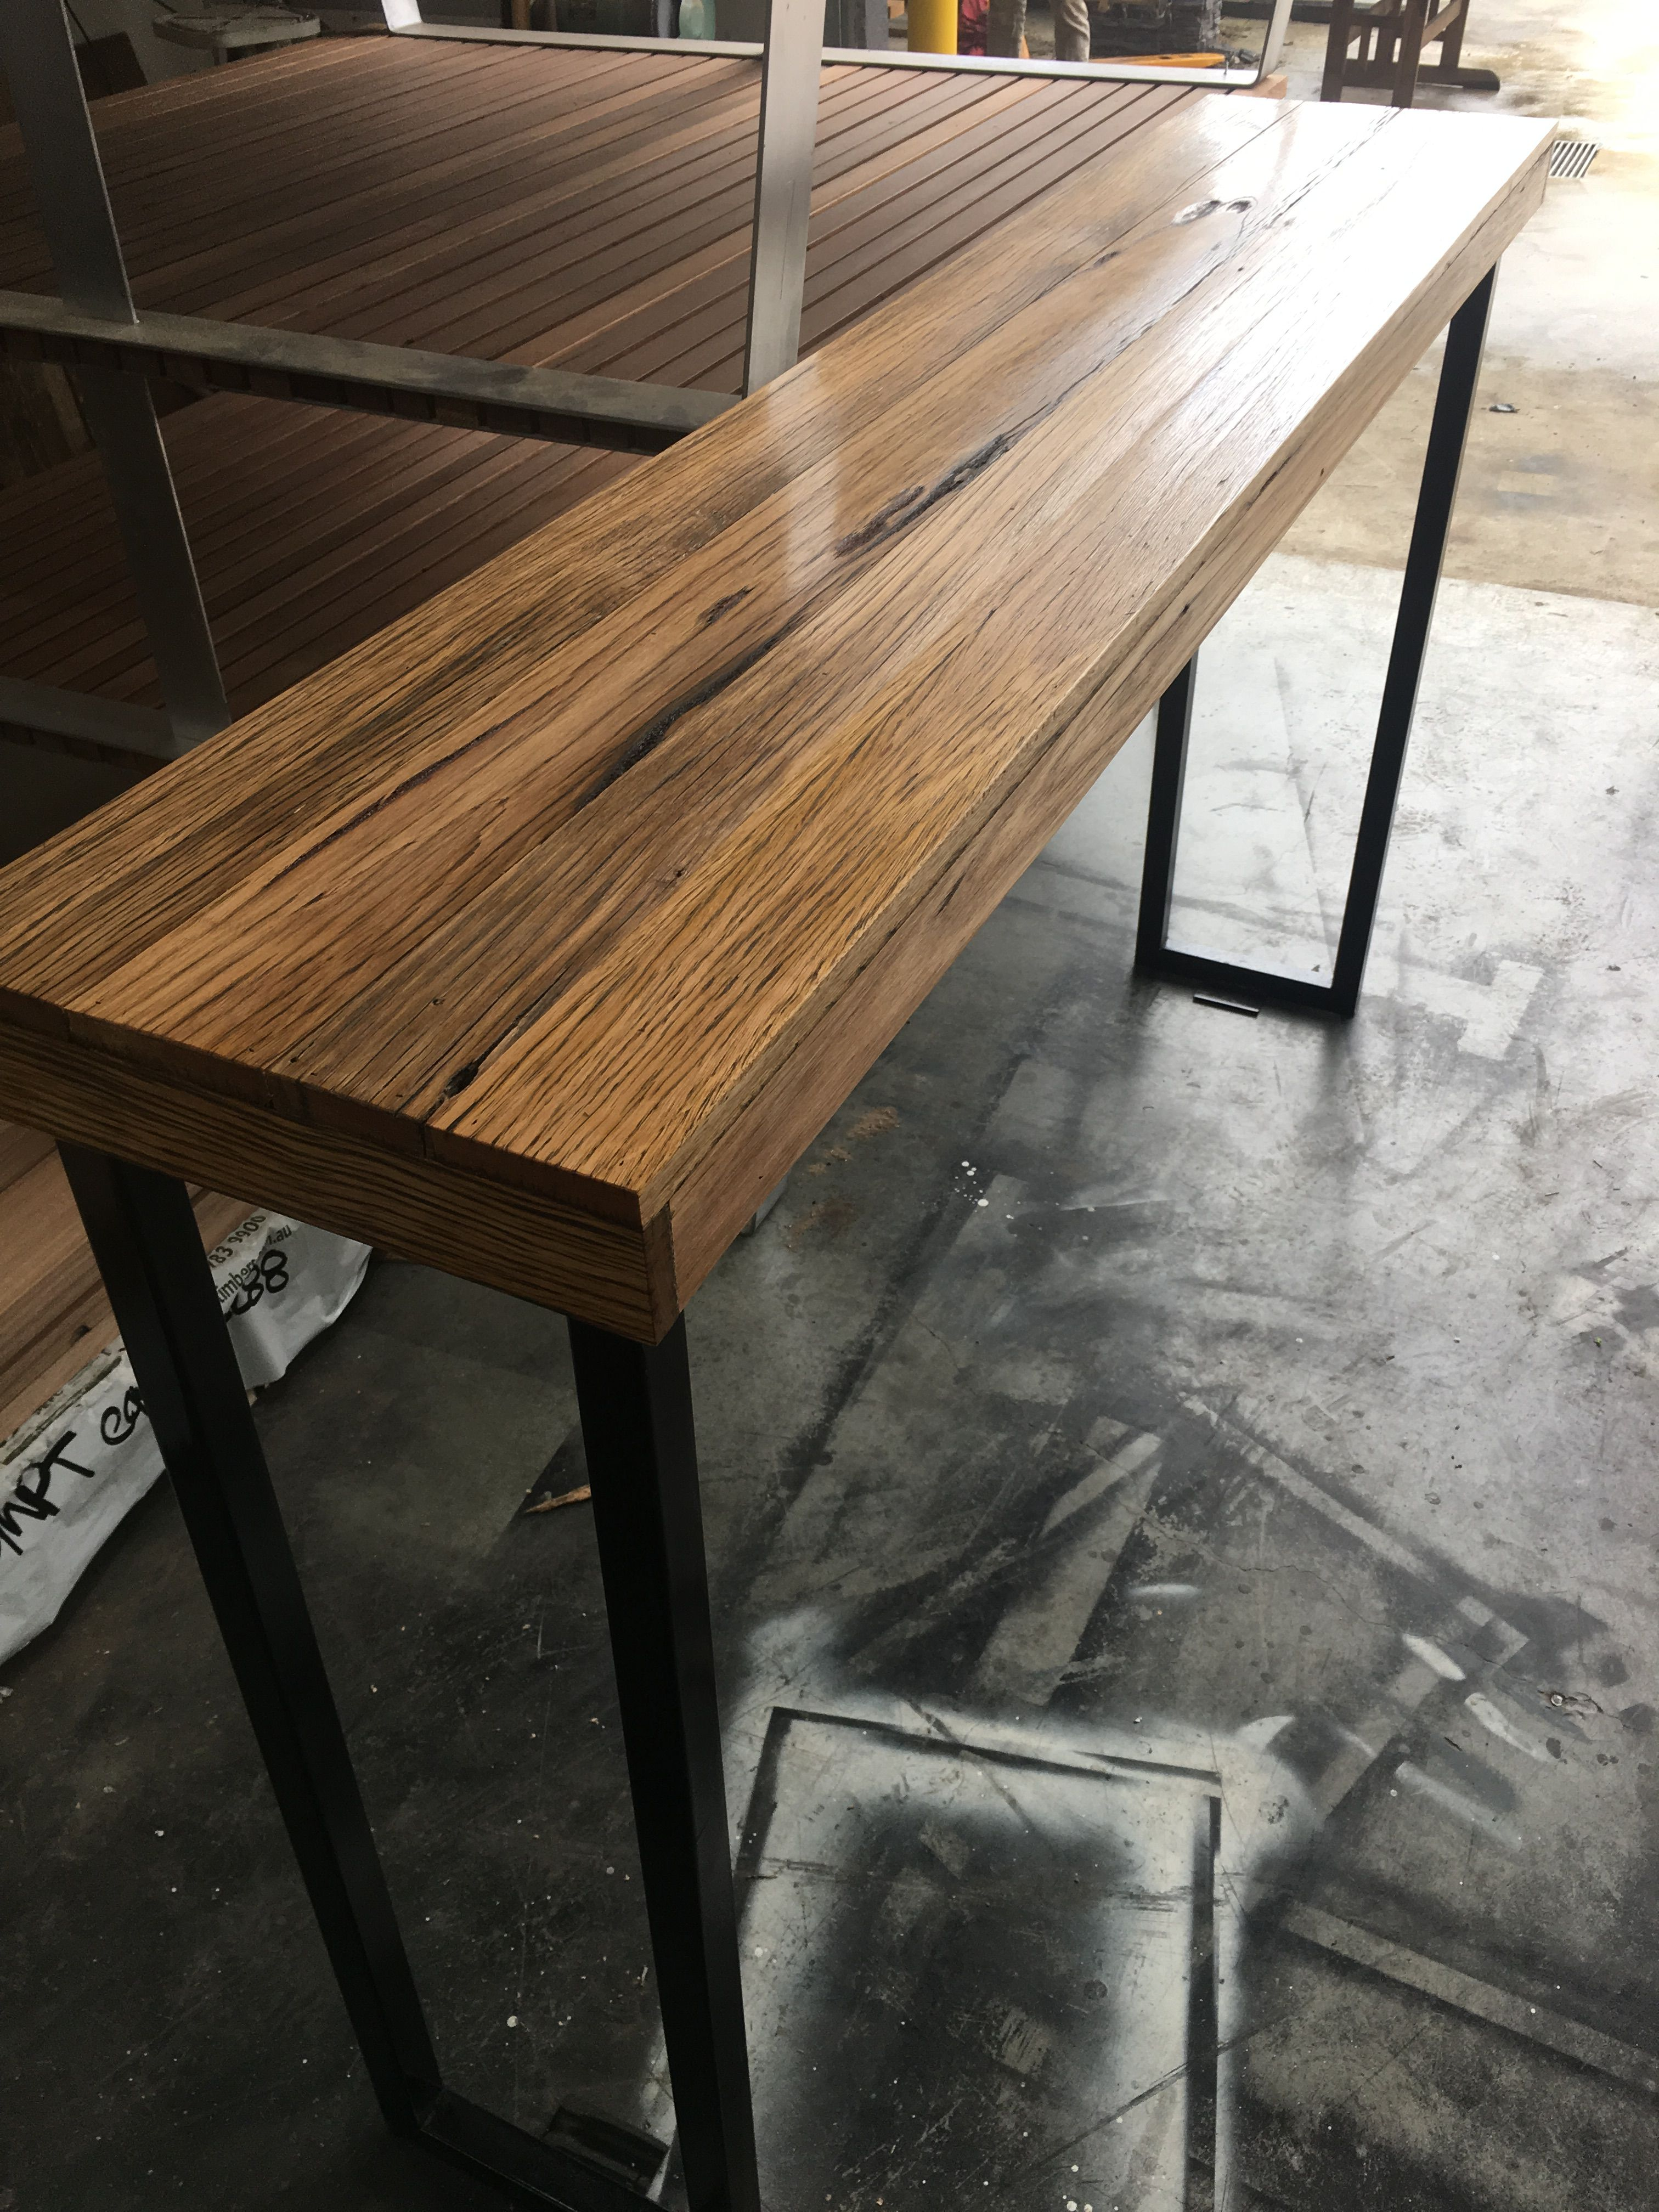 ea38362e6ecd Recycled Timber palings industrial bar table with black metal legs ...